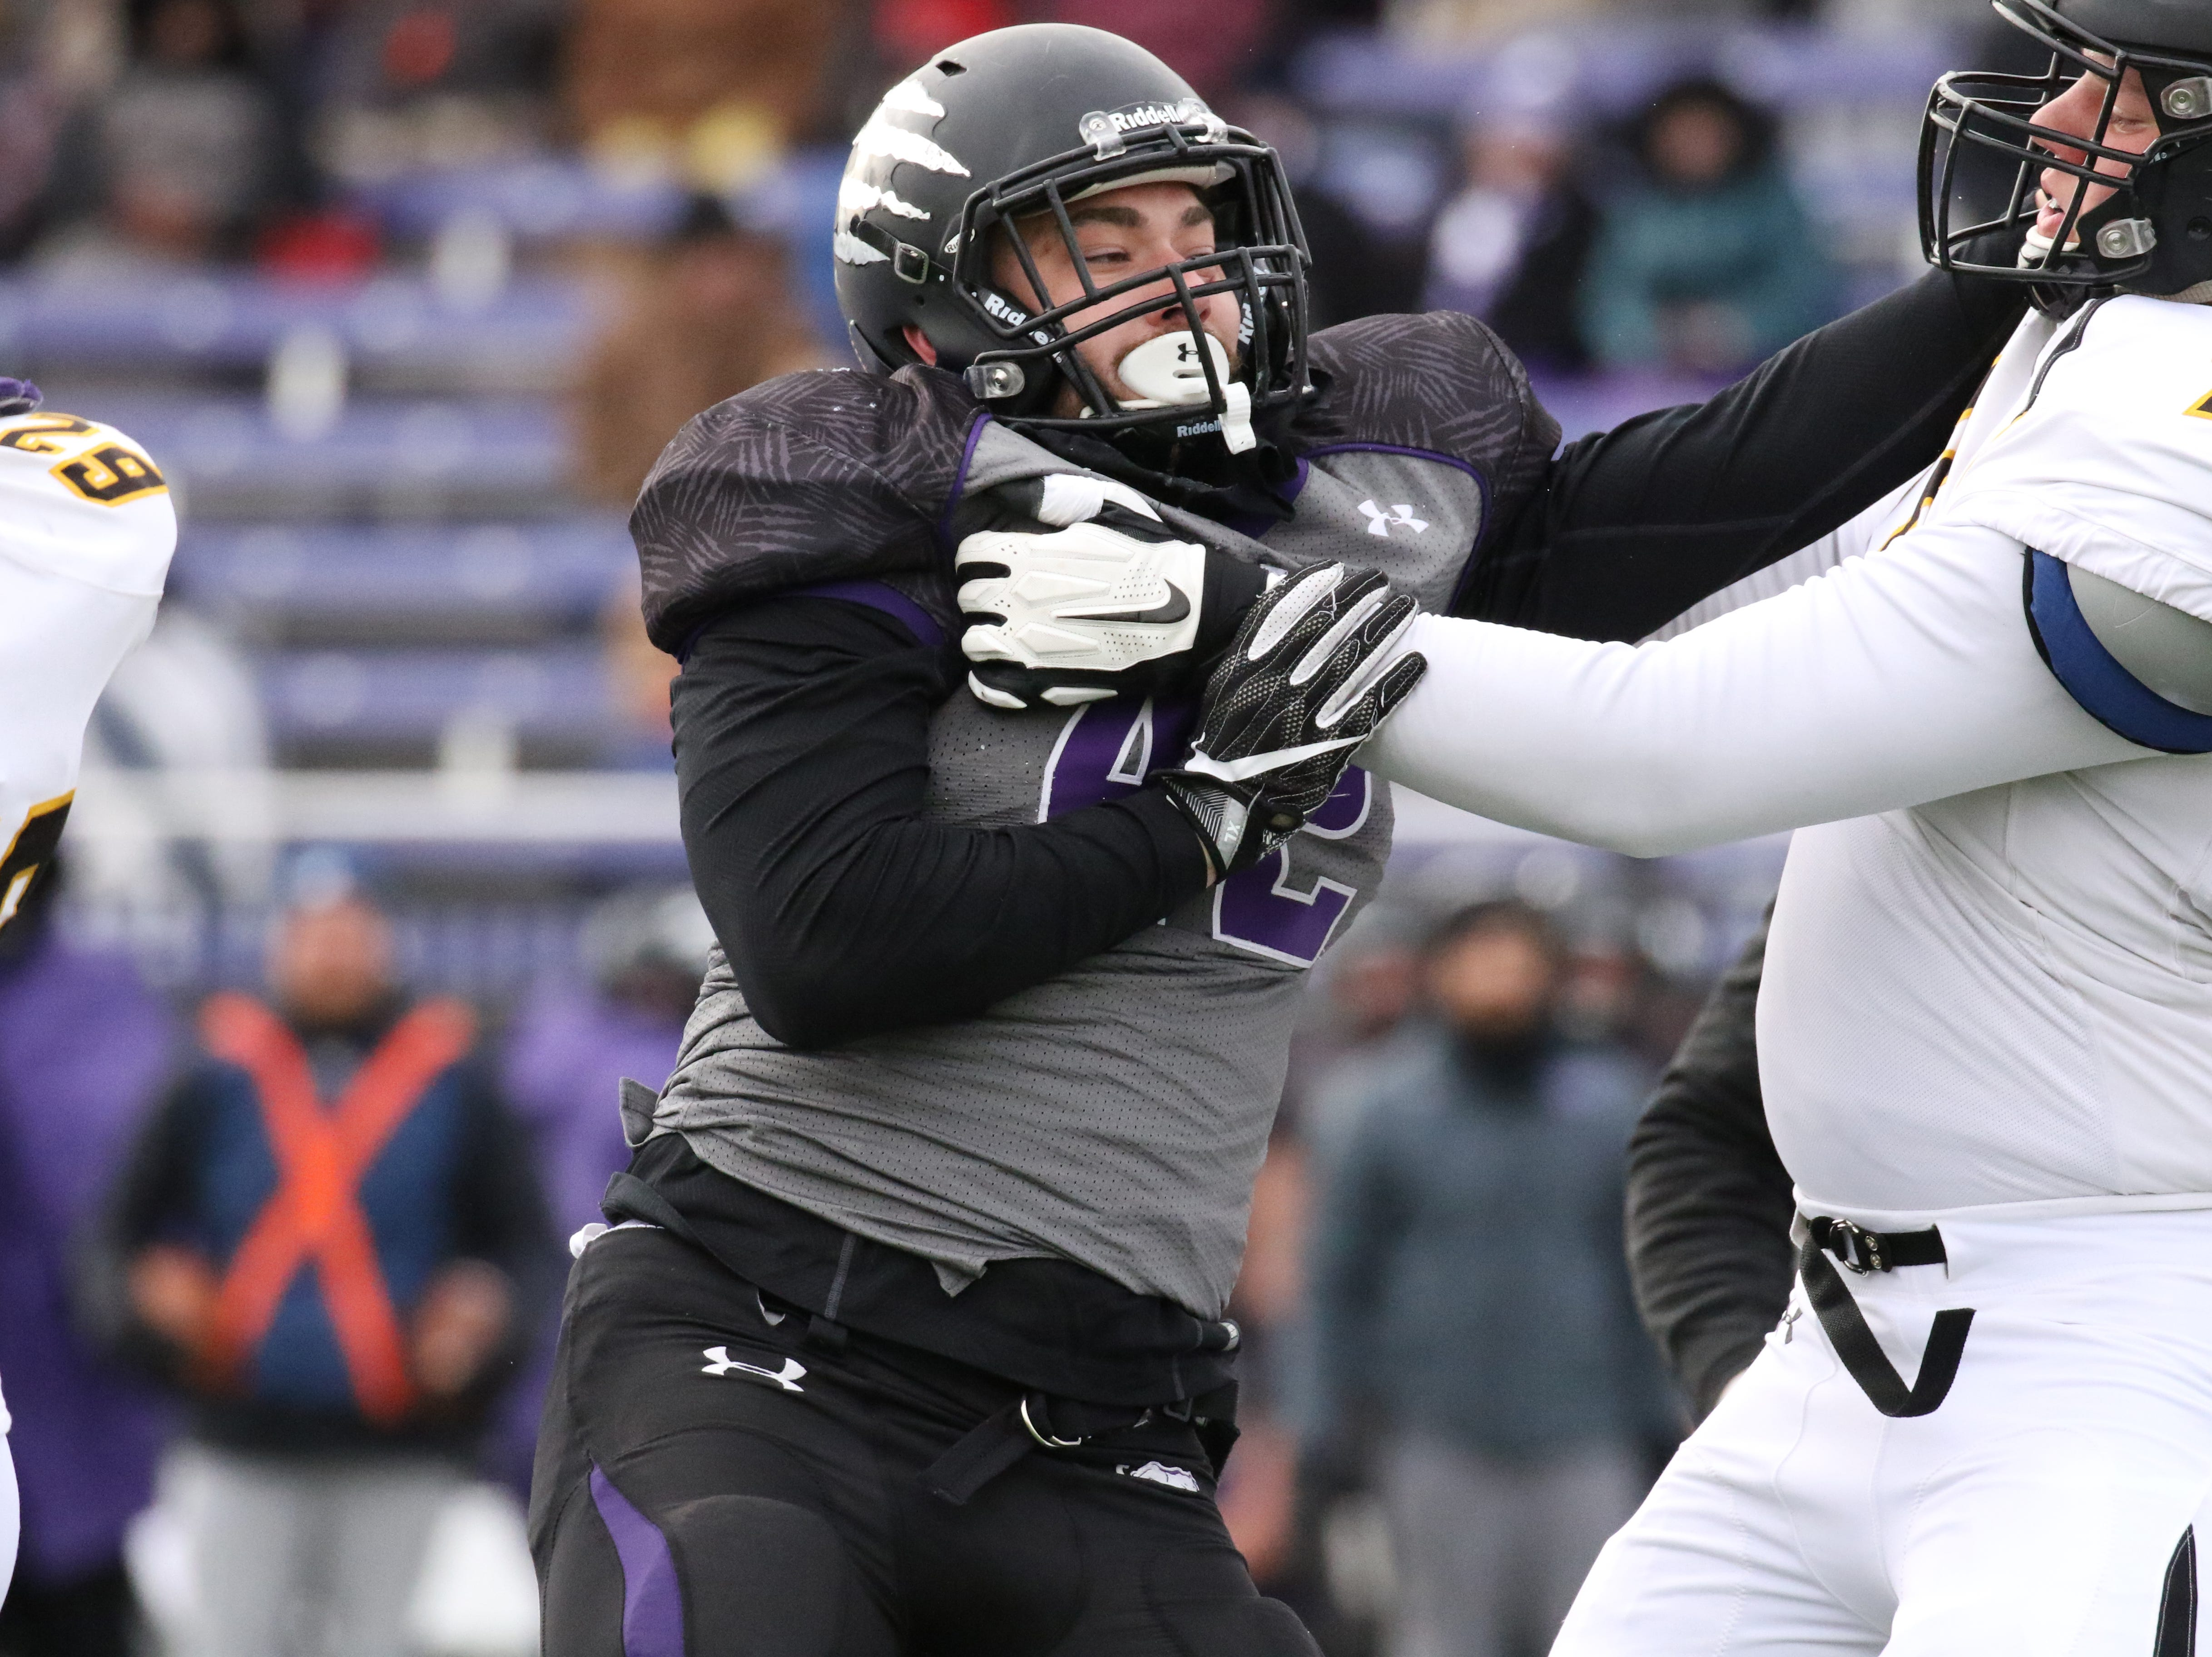 University of Sioux Falls defensive end Aaron Ortiz rushes against Nick Gray of Wayne State during Saturday's game at Bob Young Field in Sioux Falls.